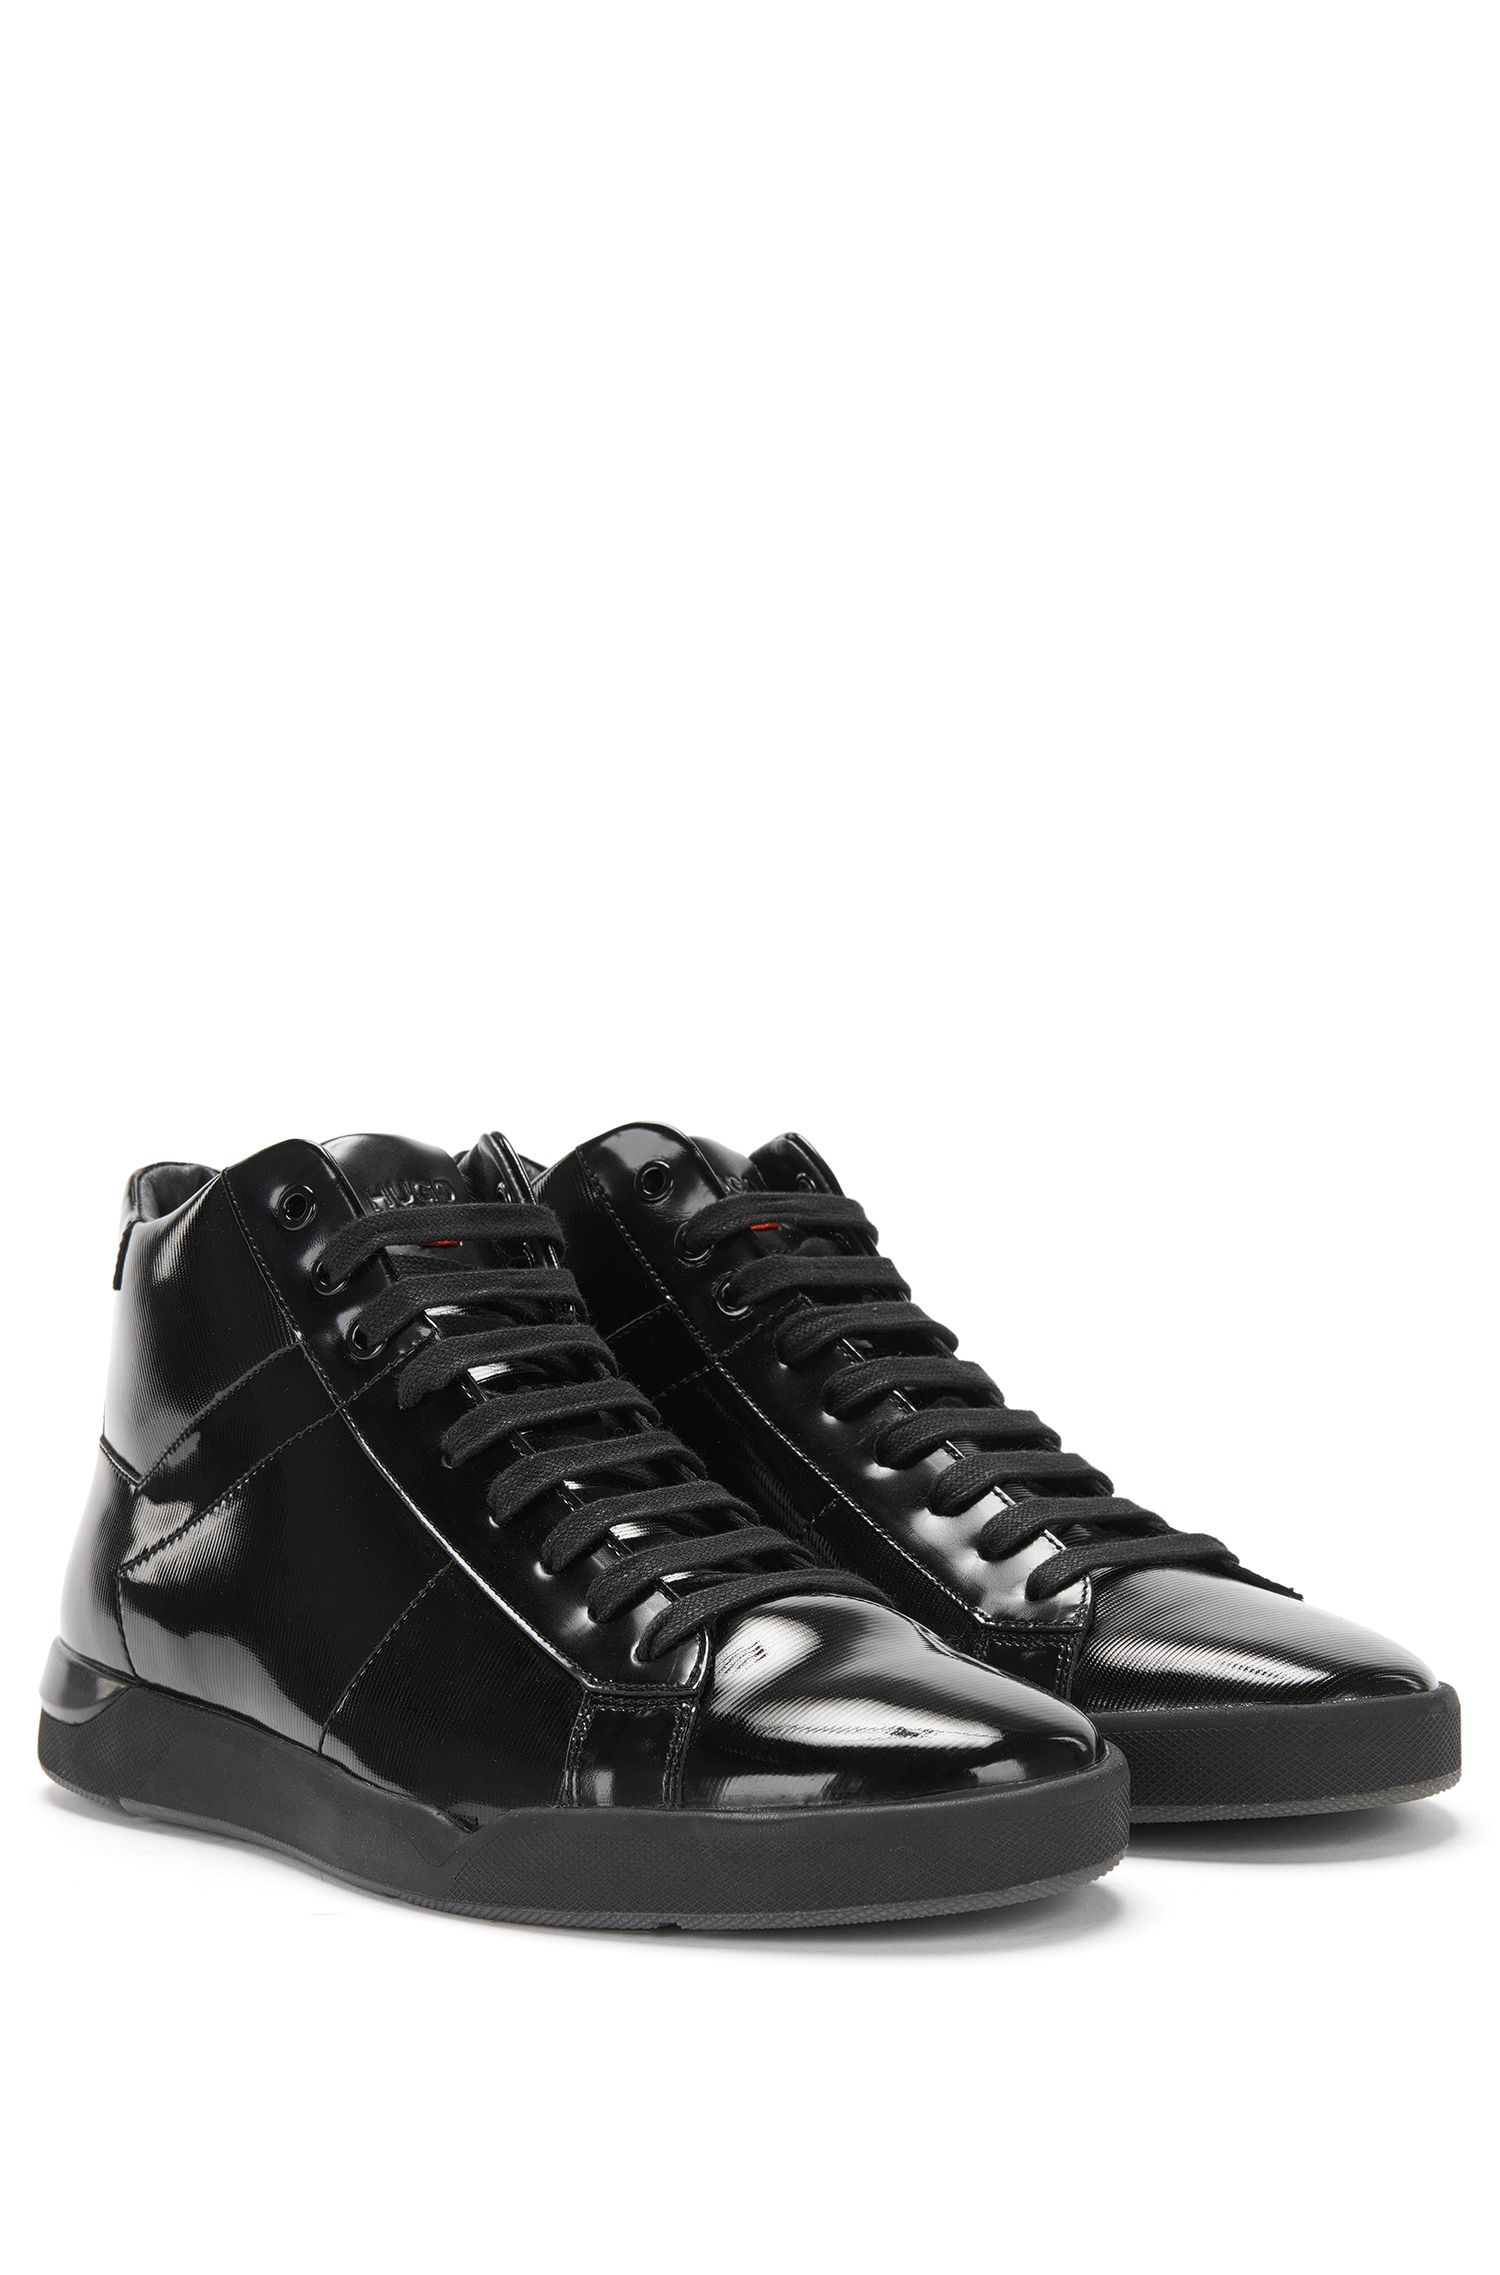 'Fusion Midc Paml' | Calfskin Patent High Tops